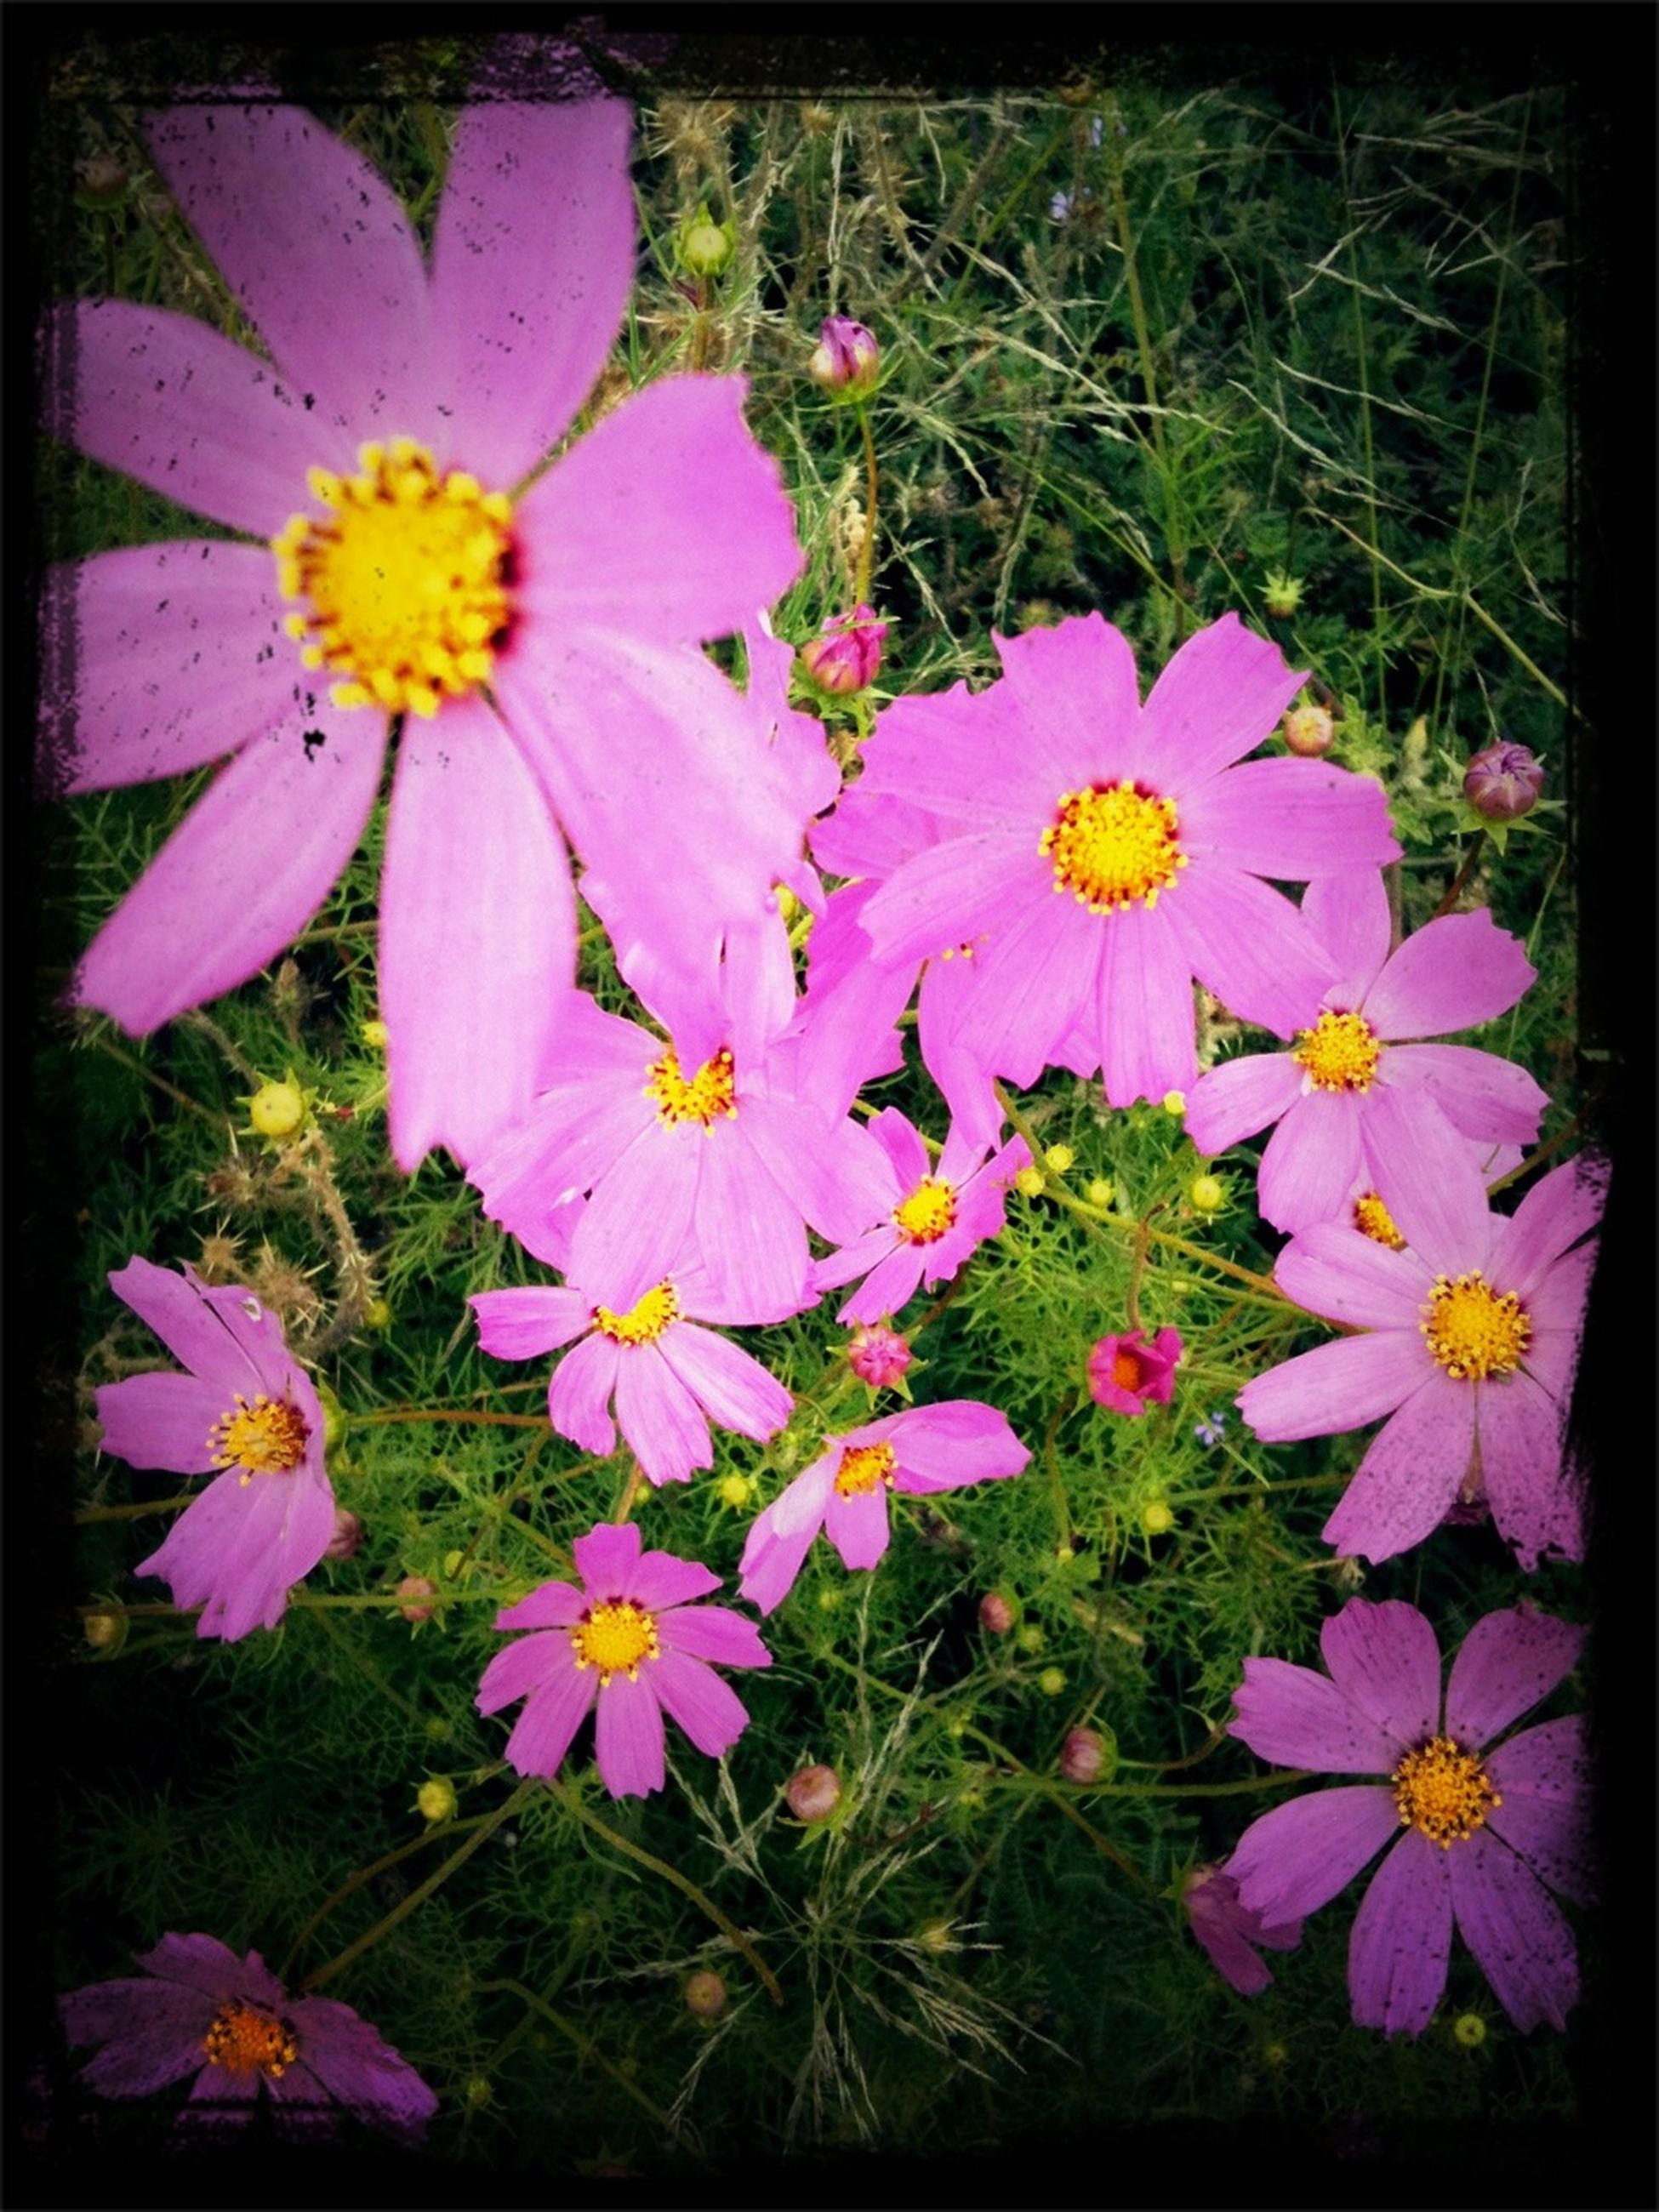 flower, petal, freshness, fragility, flower head, beauty in nature, growth, pink color, blooming, high angle view, nature, pollen, in bloom, close-up, plant, purple, field, stamen, blossom, pink